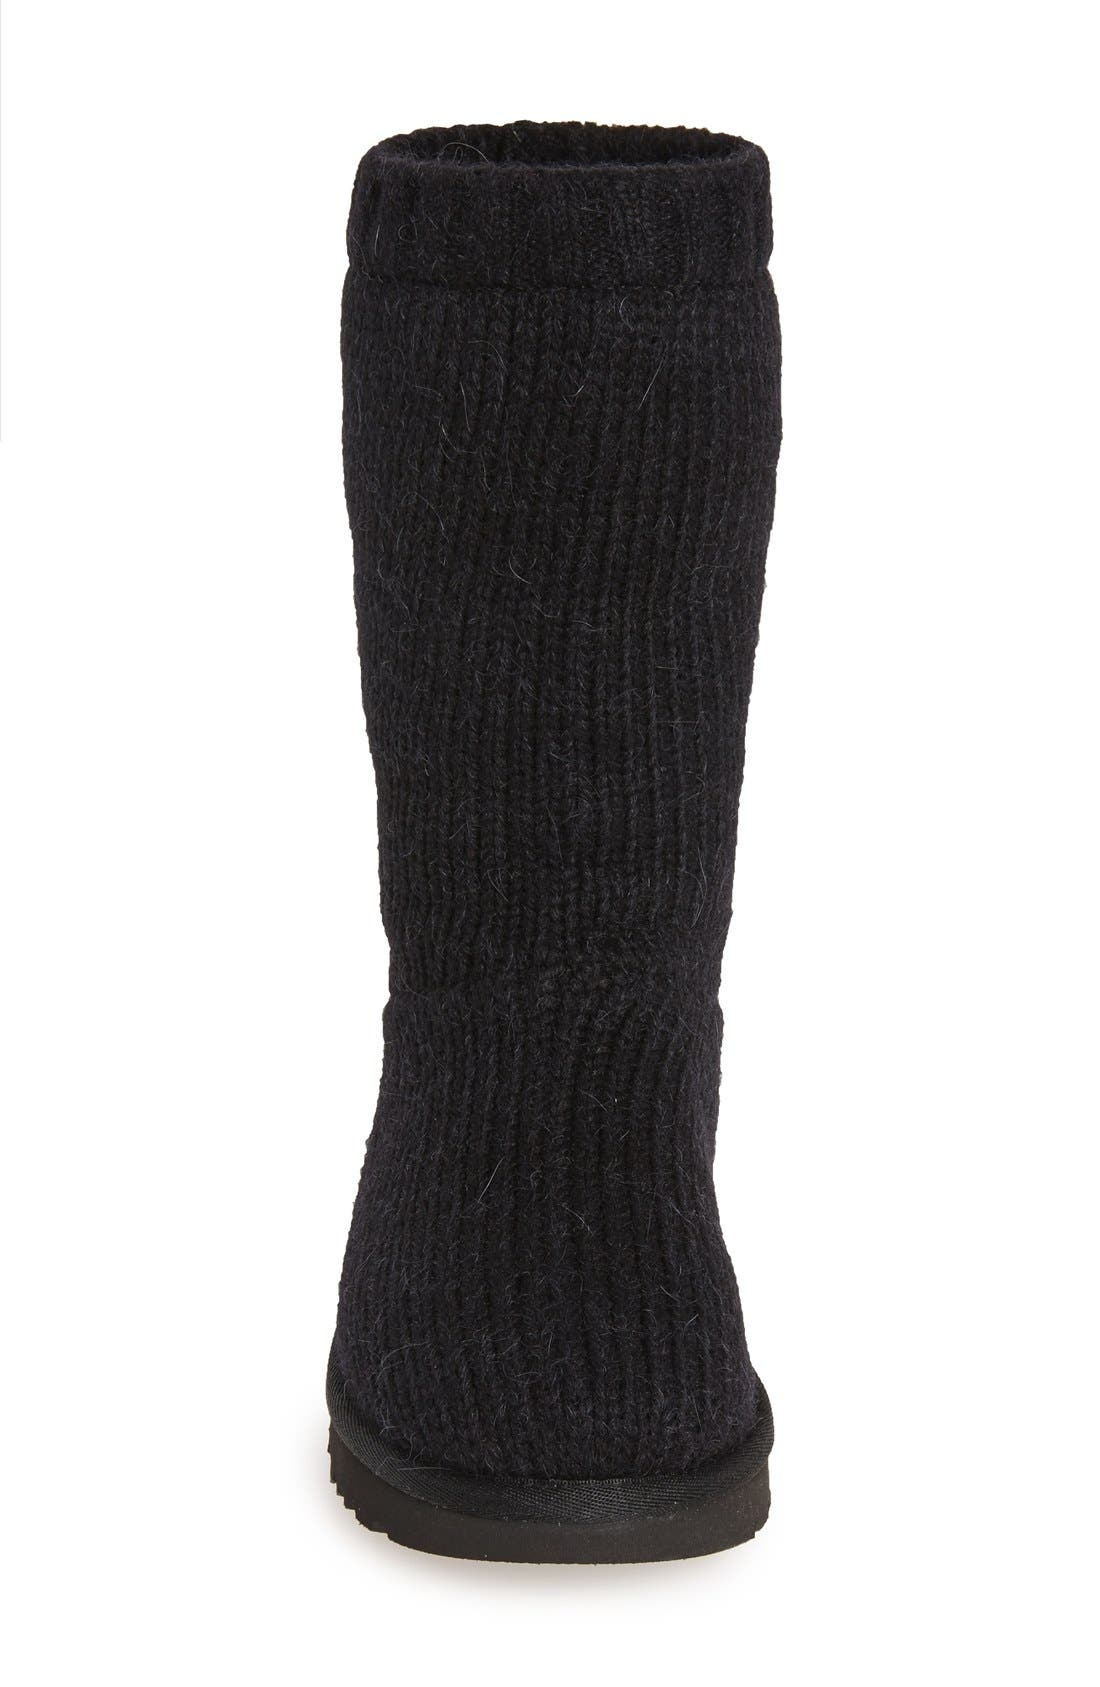 'Capra' Ribbed Knit Genuine Shearling Lined Boot,                             Alternate thumbnail 2, color,                             001